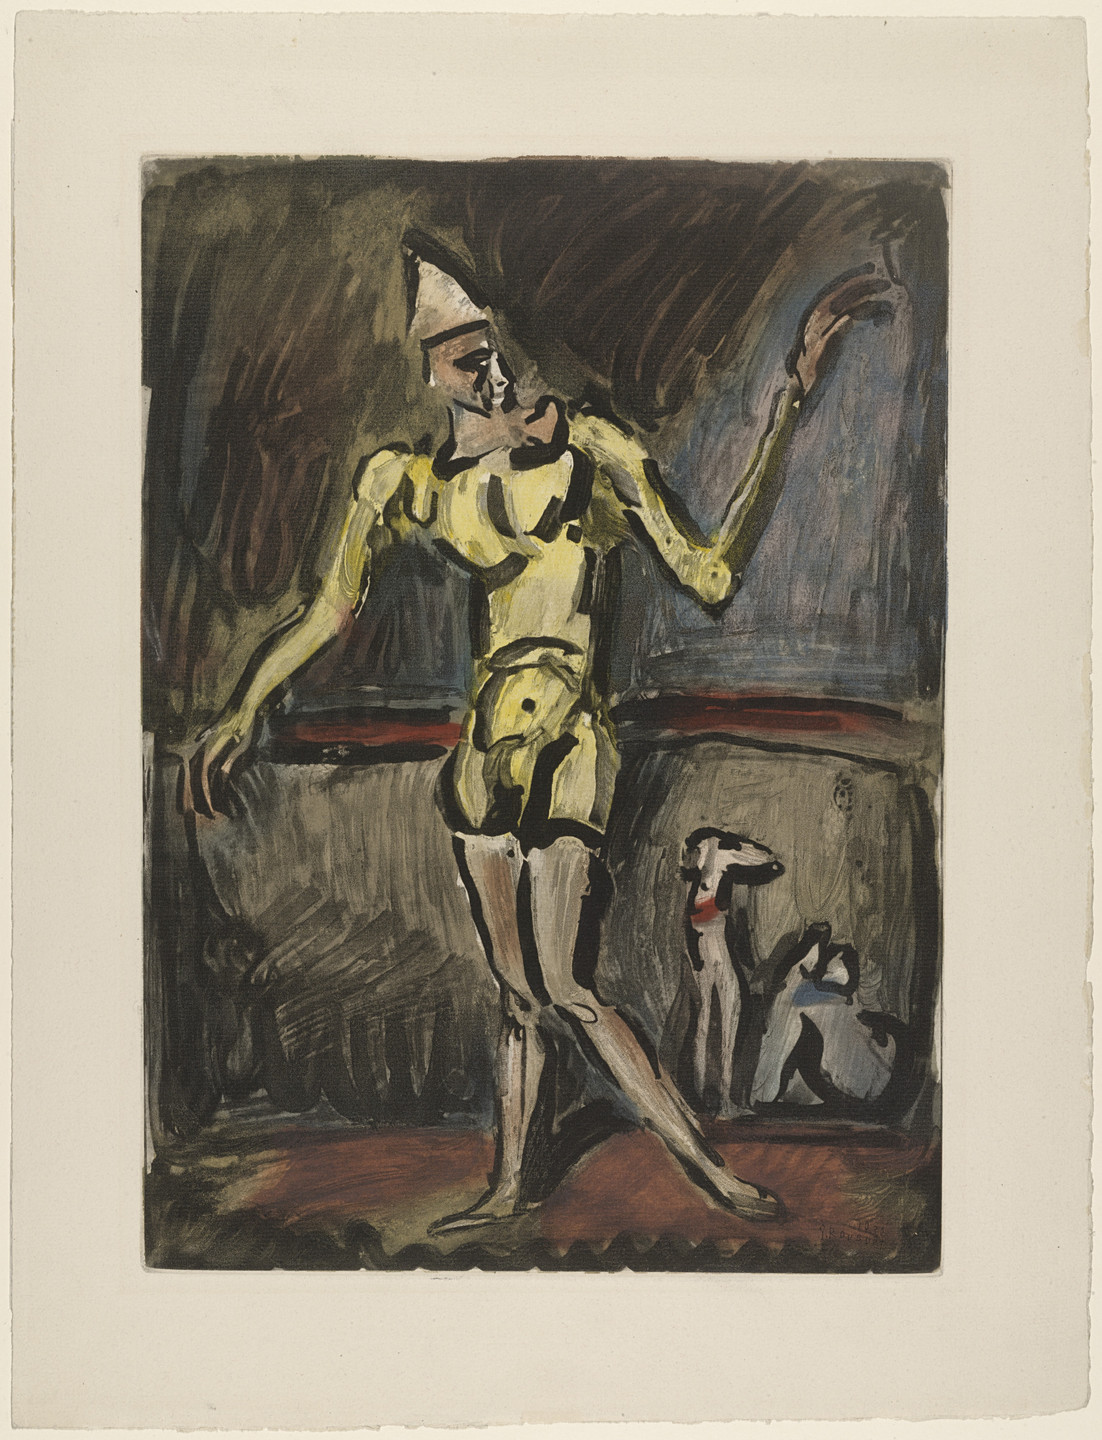 Georges Rouault. The Yellow Clown from Cirque. 1930